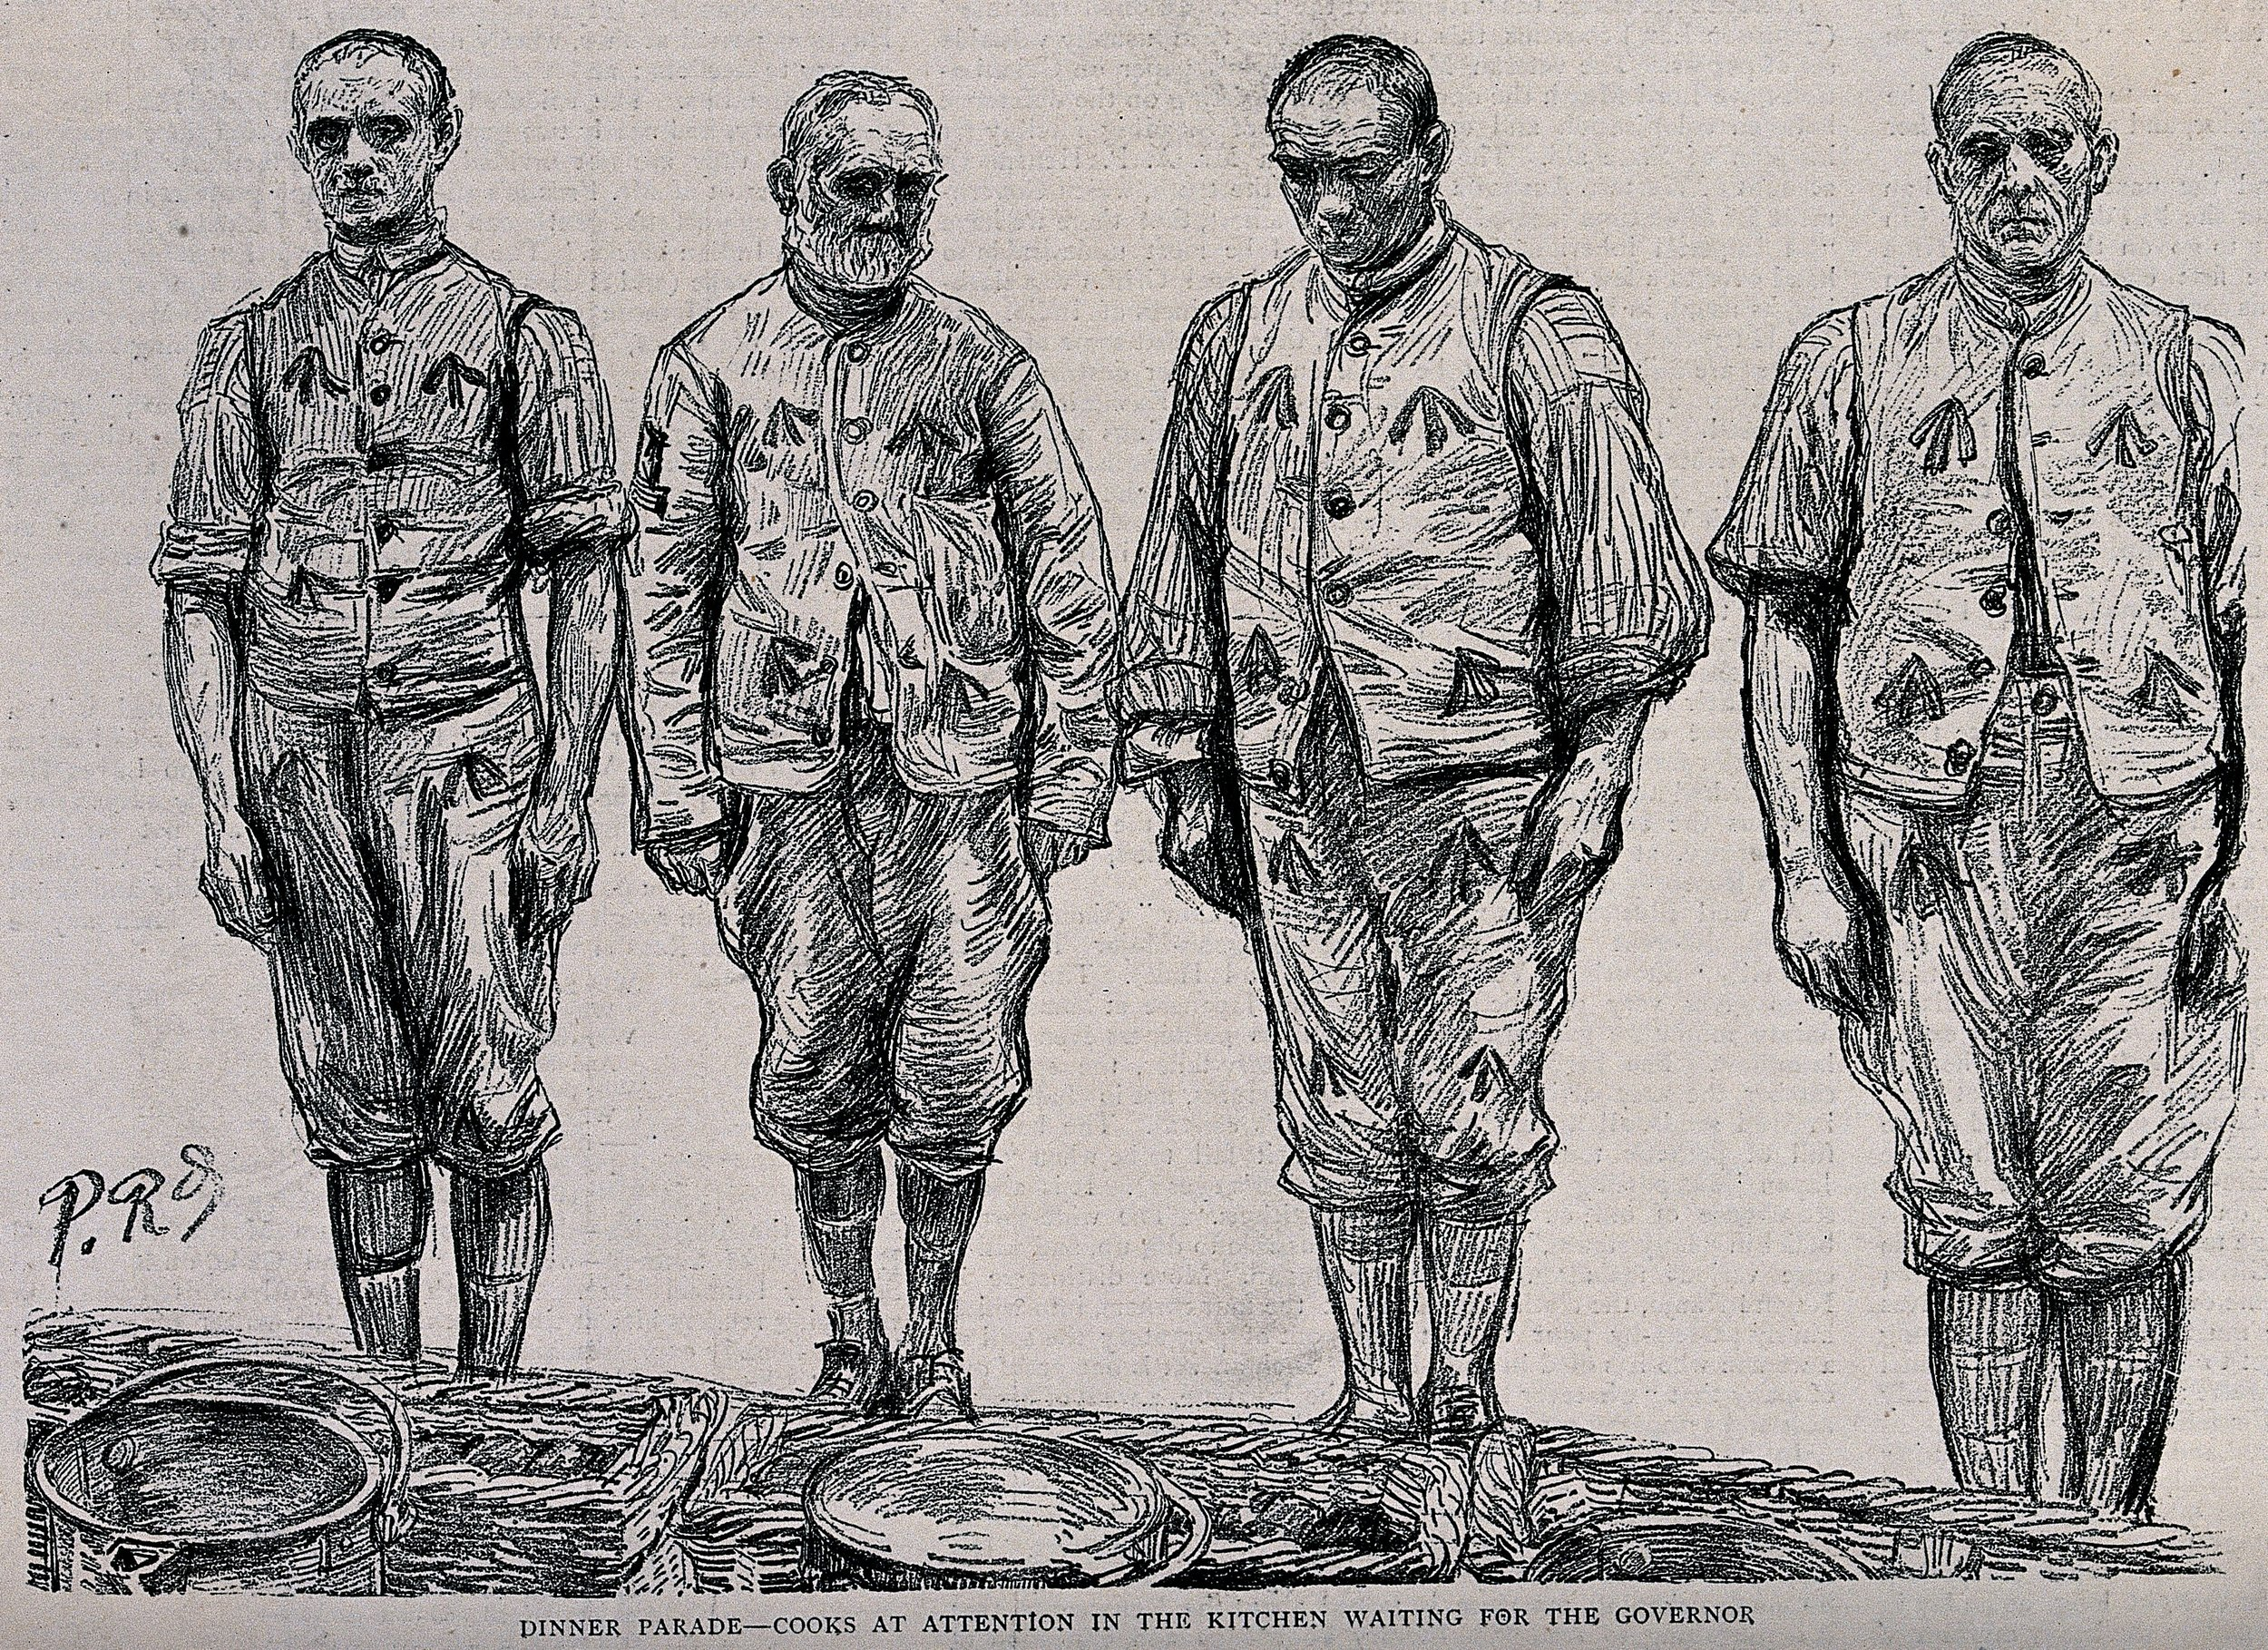 Four_men_in_prison_uniform_are_standing_in_a_line_in_front_o_Wellcome_V0041243.jpg